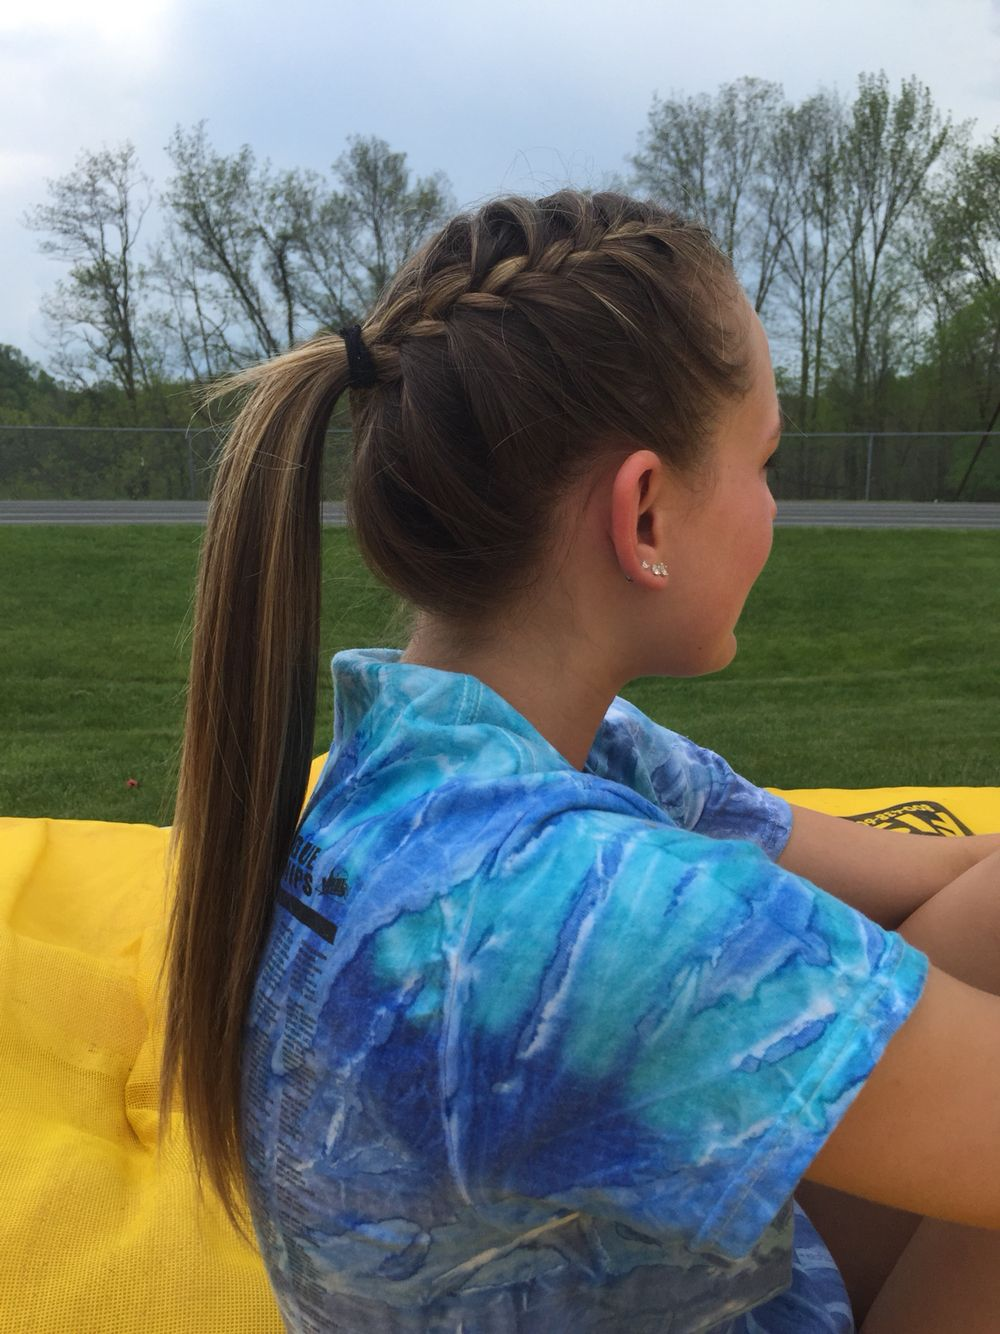 Track Runner Hair Hair Styles Pinterest Runners